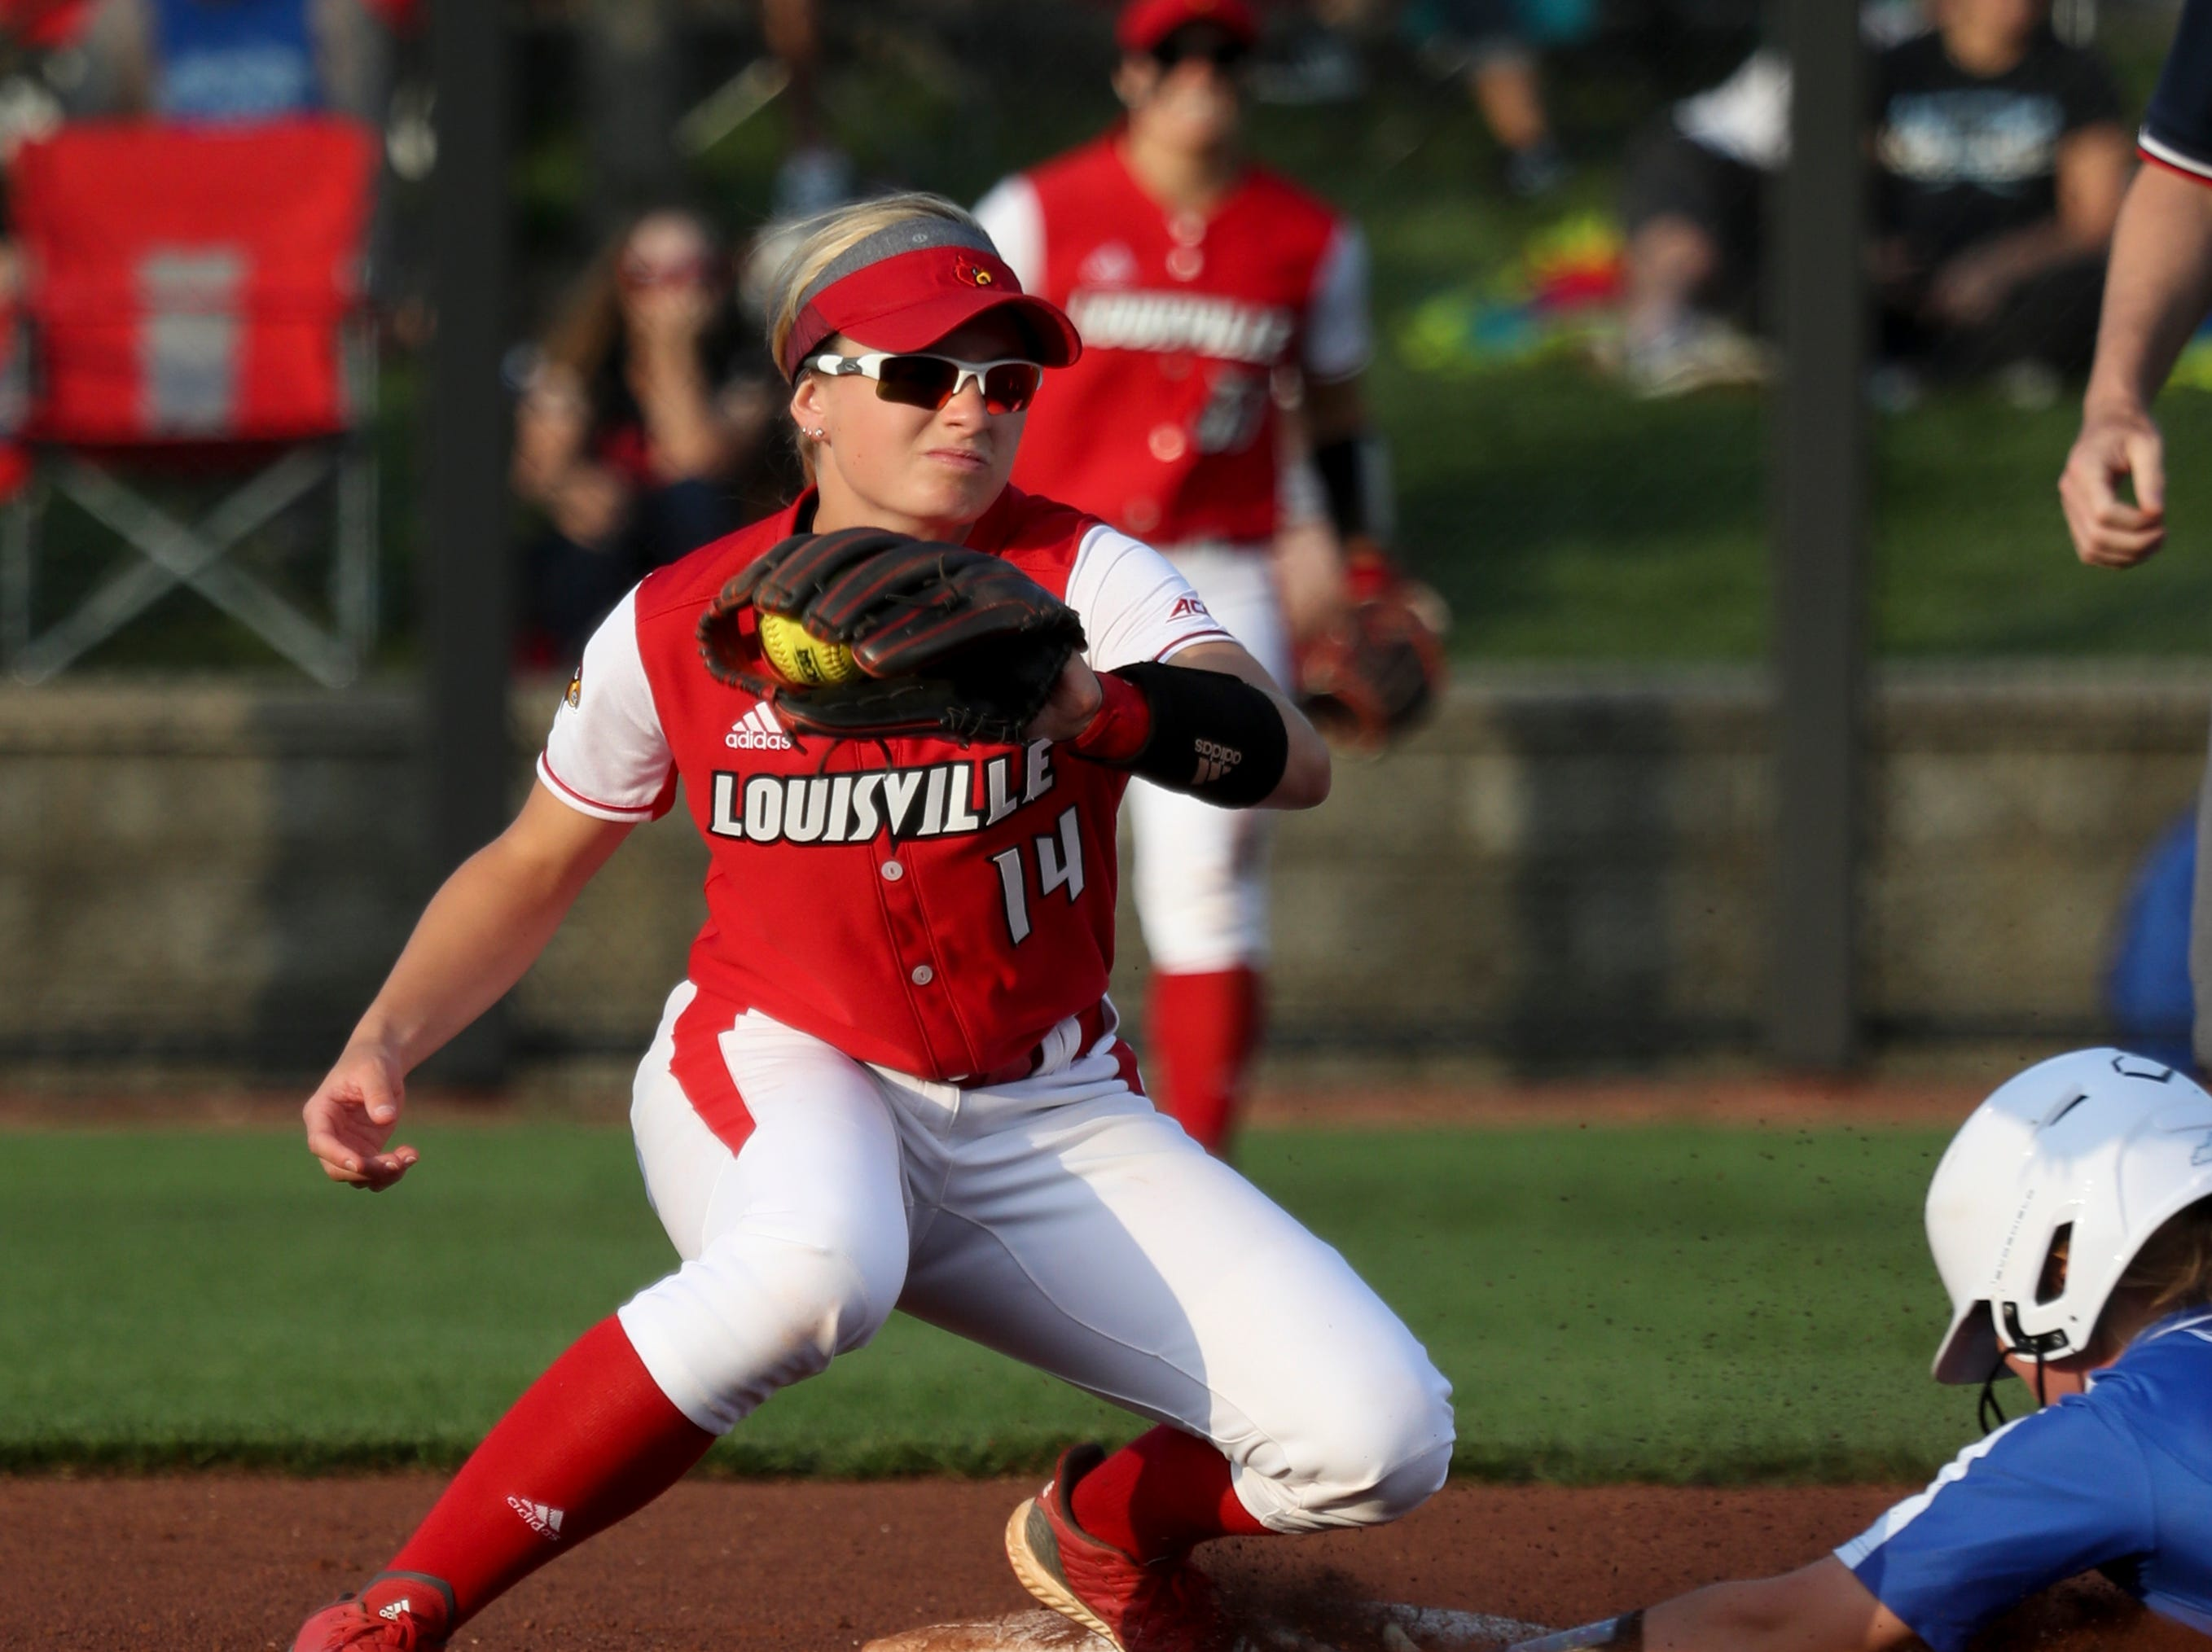 Louisville's Caitlin Ferguson does not get the ball in time to apply the tag against Kentucky on April 17.